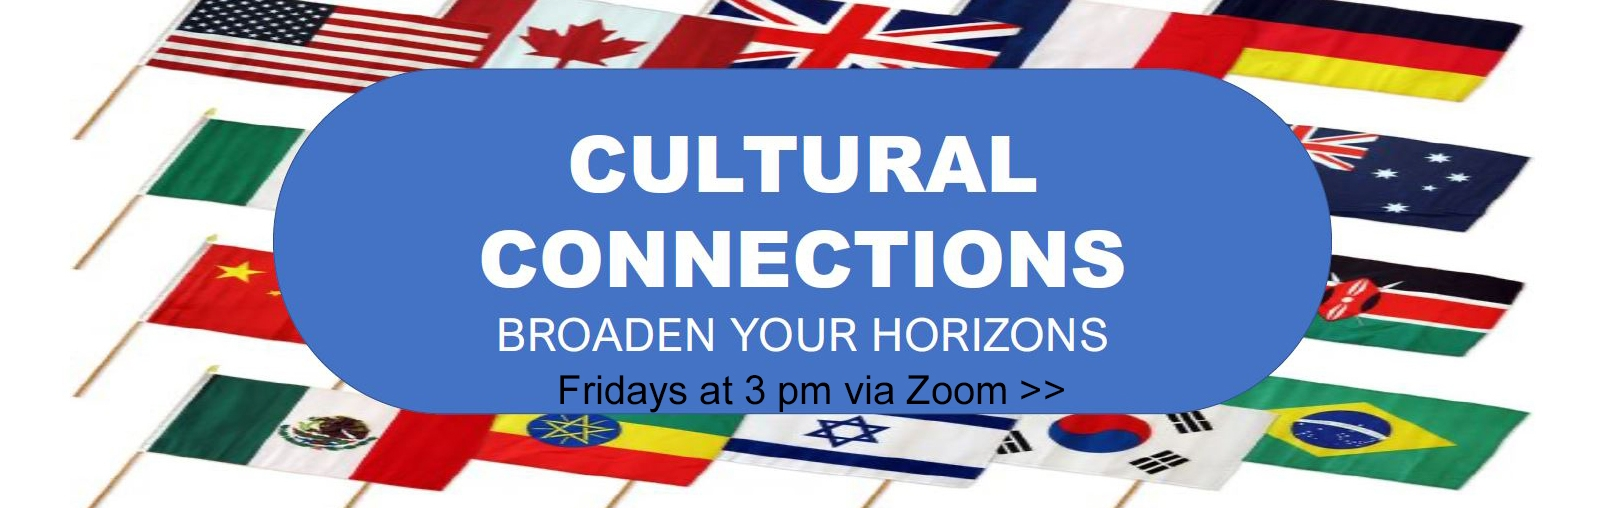 Cultural connections header, international flags in background